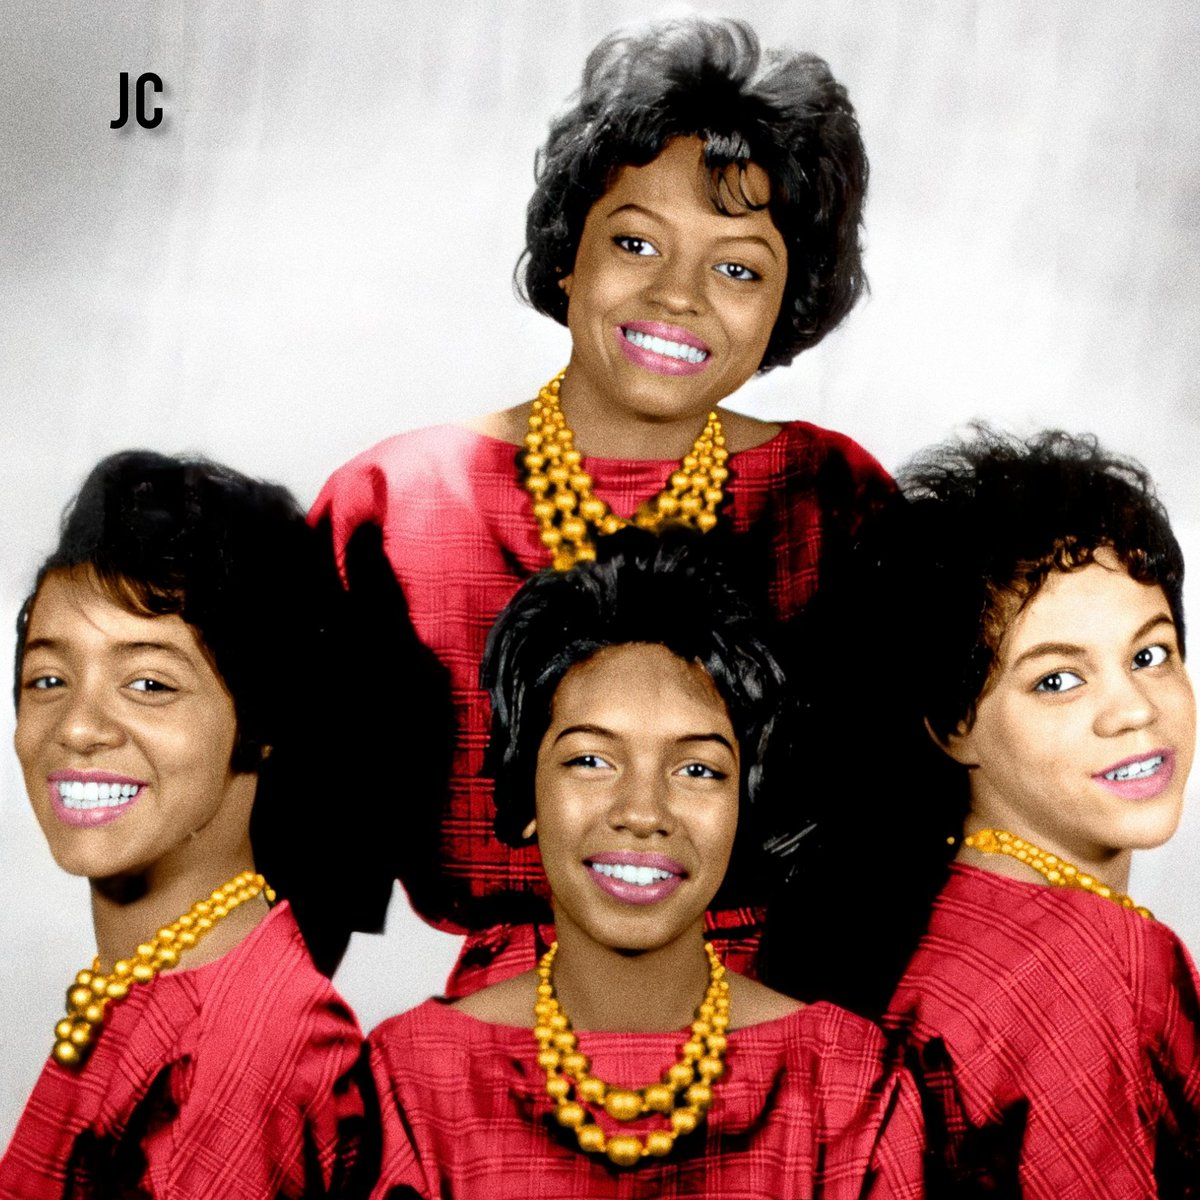 """#OTD The Primettes signed with Motown Records becoming """"The Supremes"""", the biggest female vocal group in history.  Altogether, 9 singers joined the group, and became Supreme: Diana, Barbara, Florence, Mary, Cindy, Jean, Lynda, Scherrie and Susaye. Happy birthday The Supremes!"""